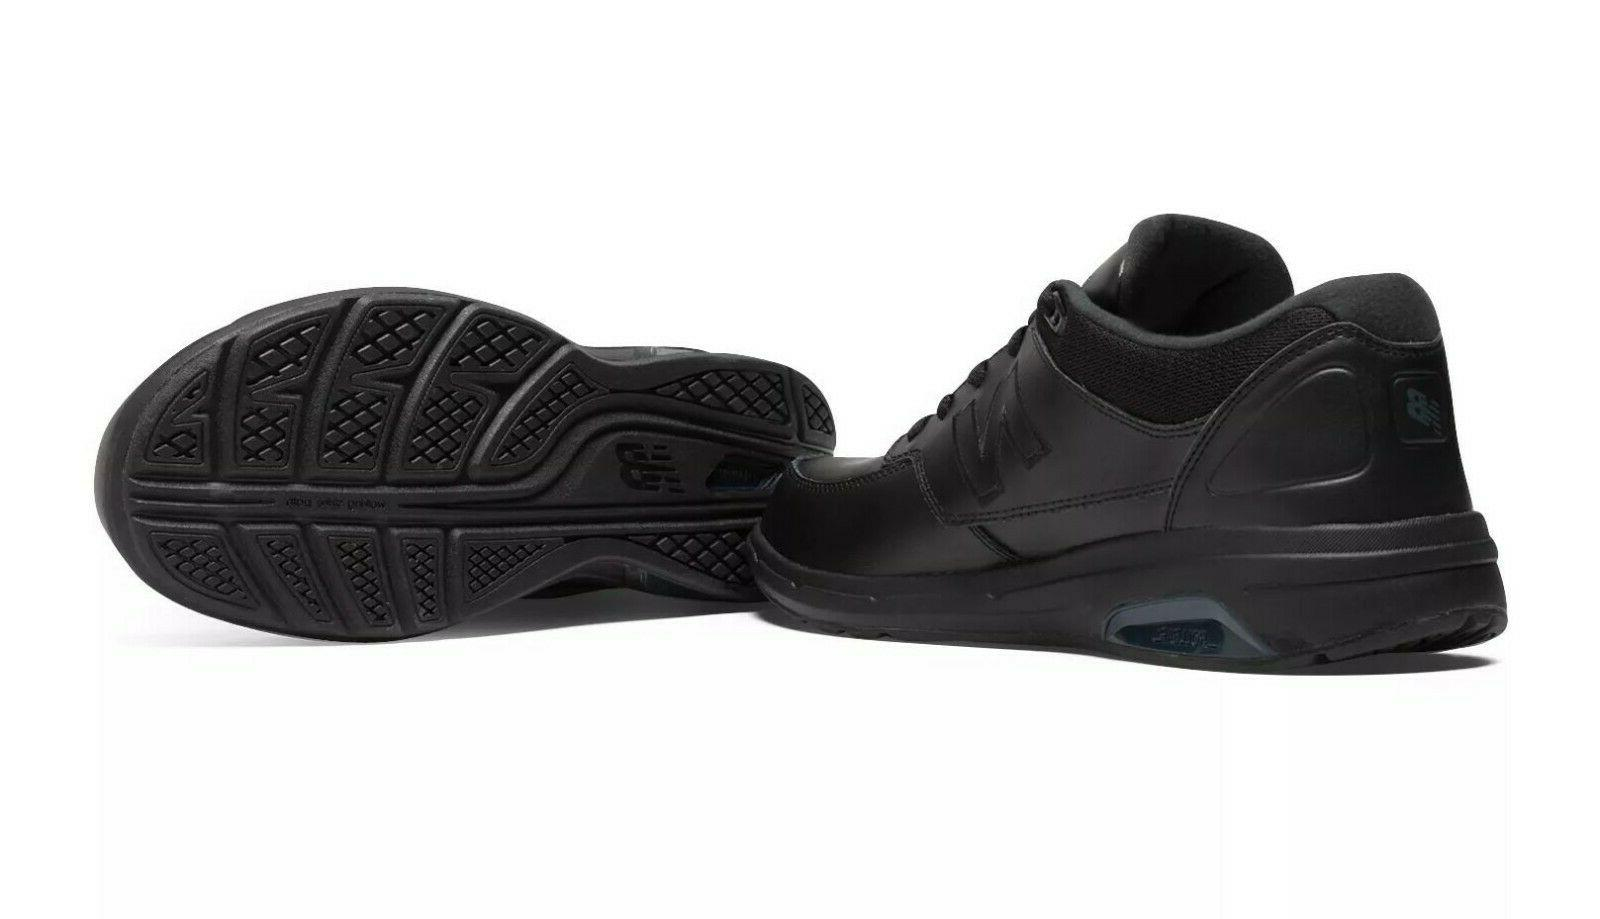 New Black Walking Lace Up